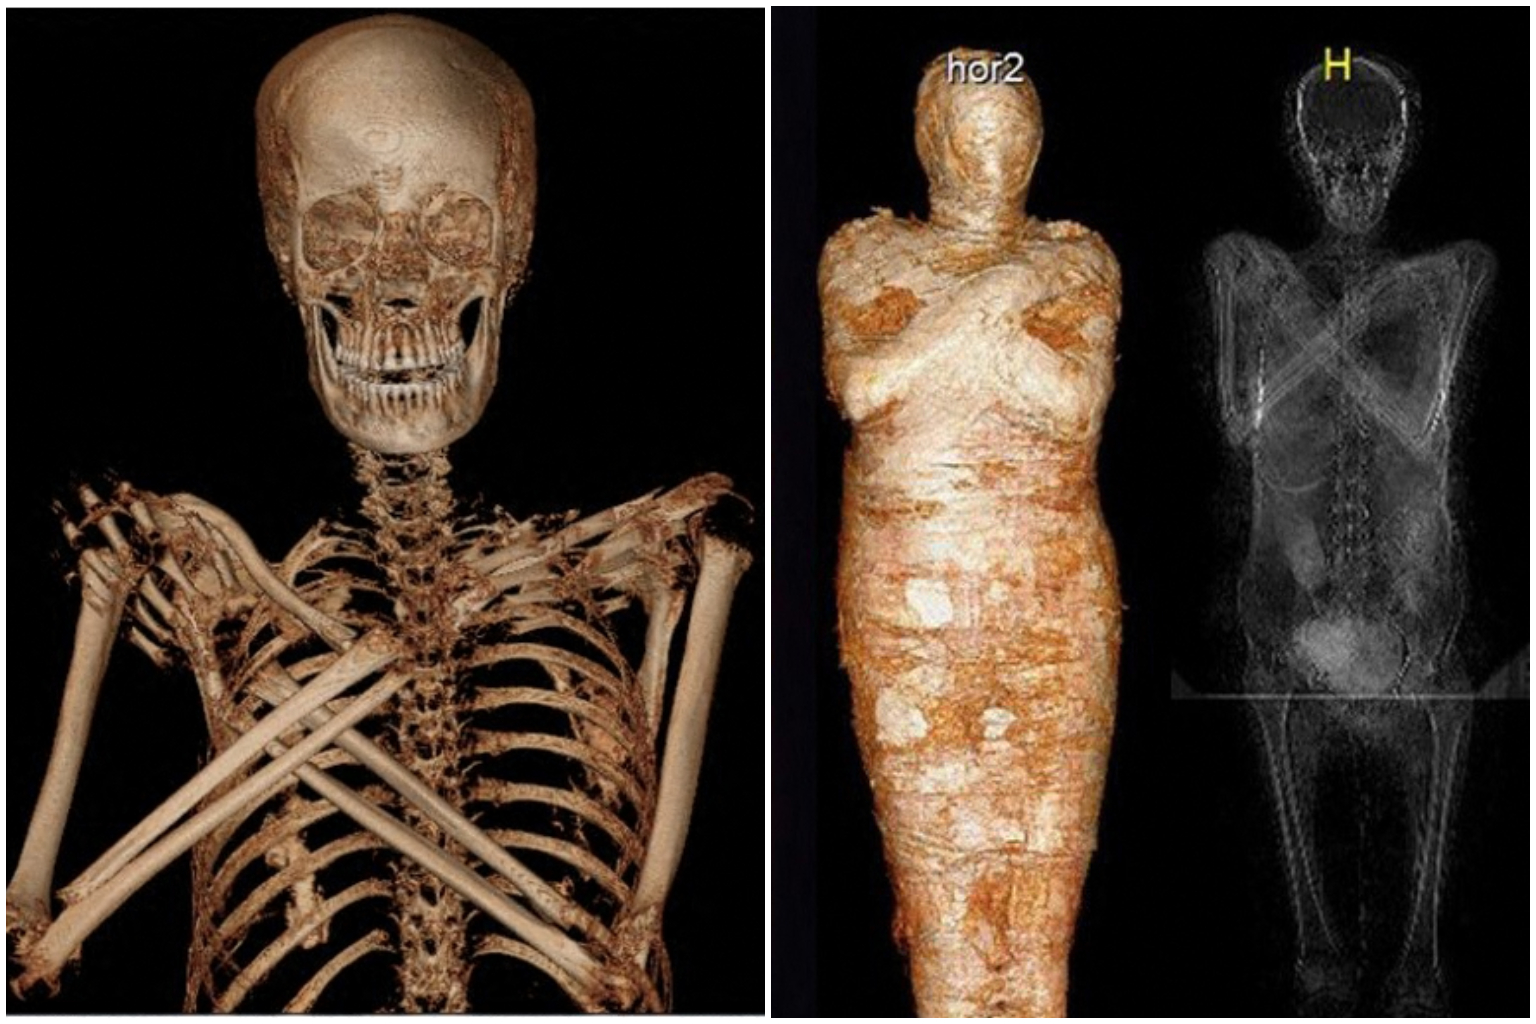 Mummy-to-be: Pregnant embalmed body identified in Poland